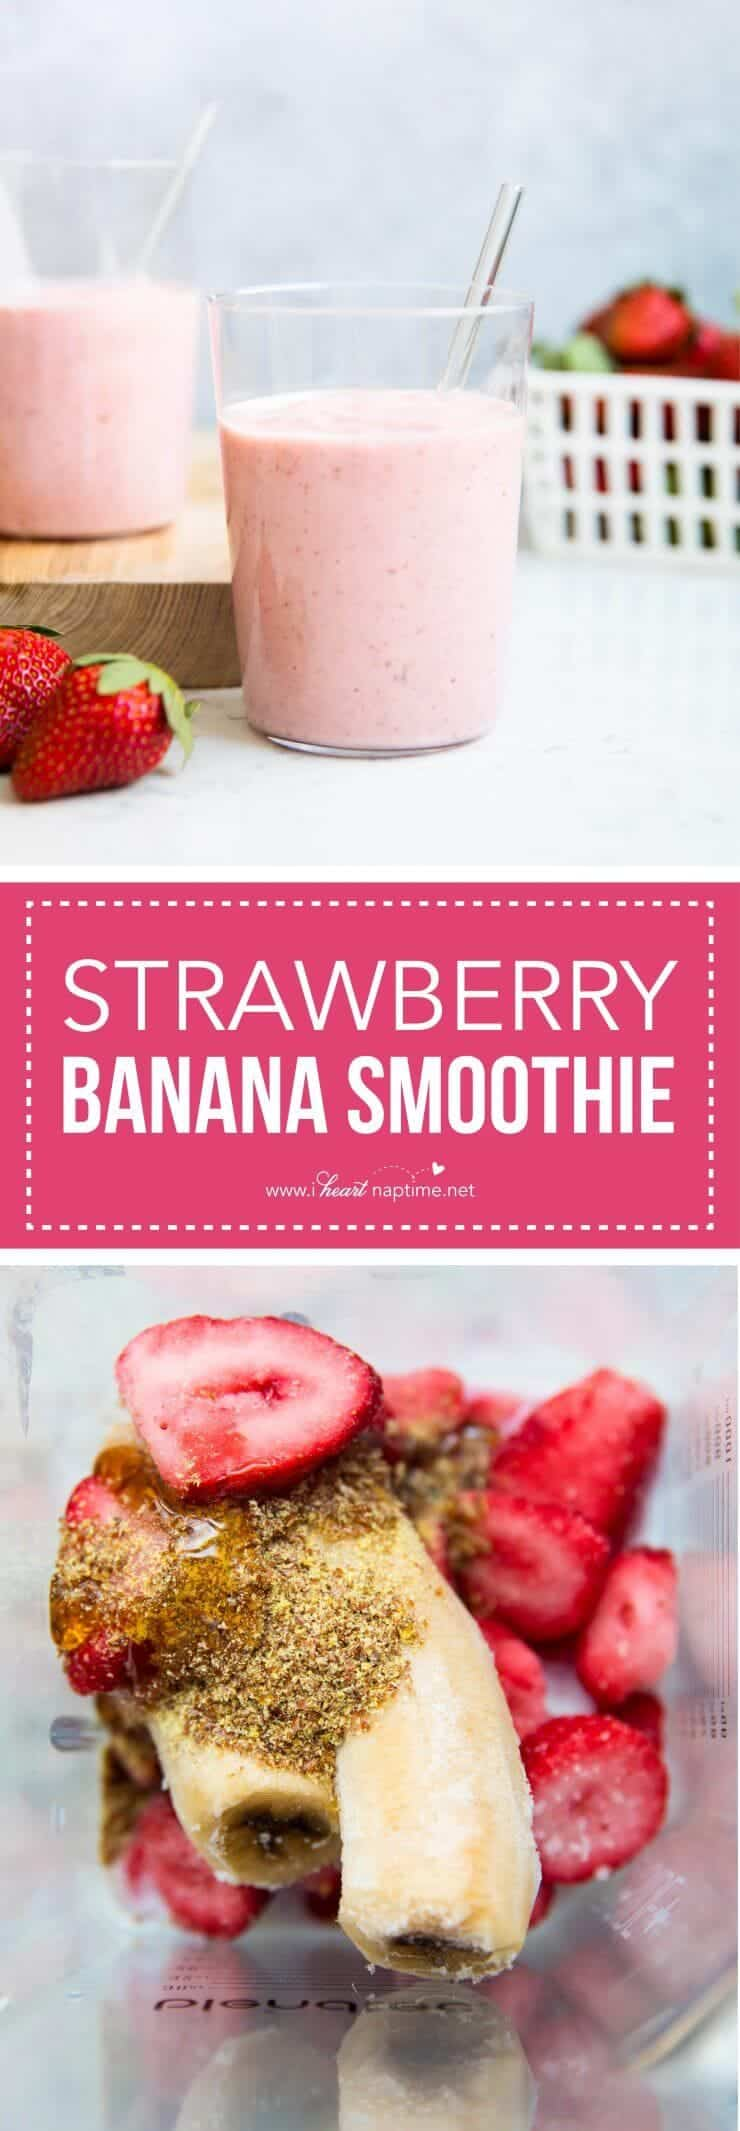 This simple strawberry banana smoothie recipe is the perfect way to welcome the new year! It only takes a few ingredients and 5 minutes to make. It's the perfect drink for those sweet cravings.